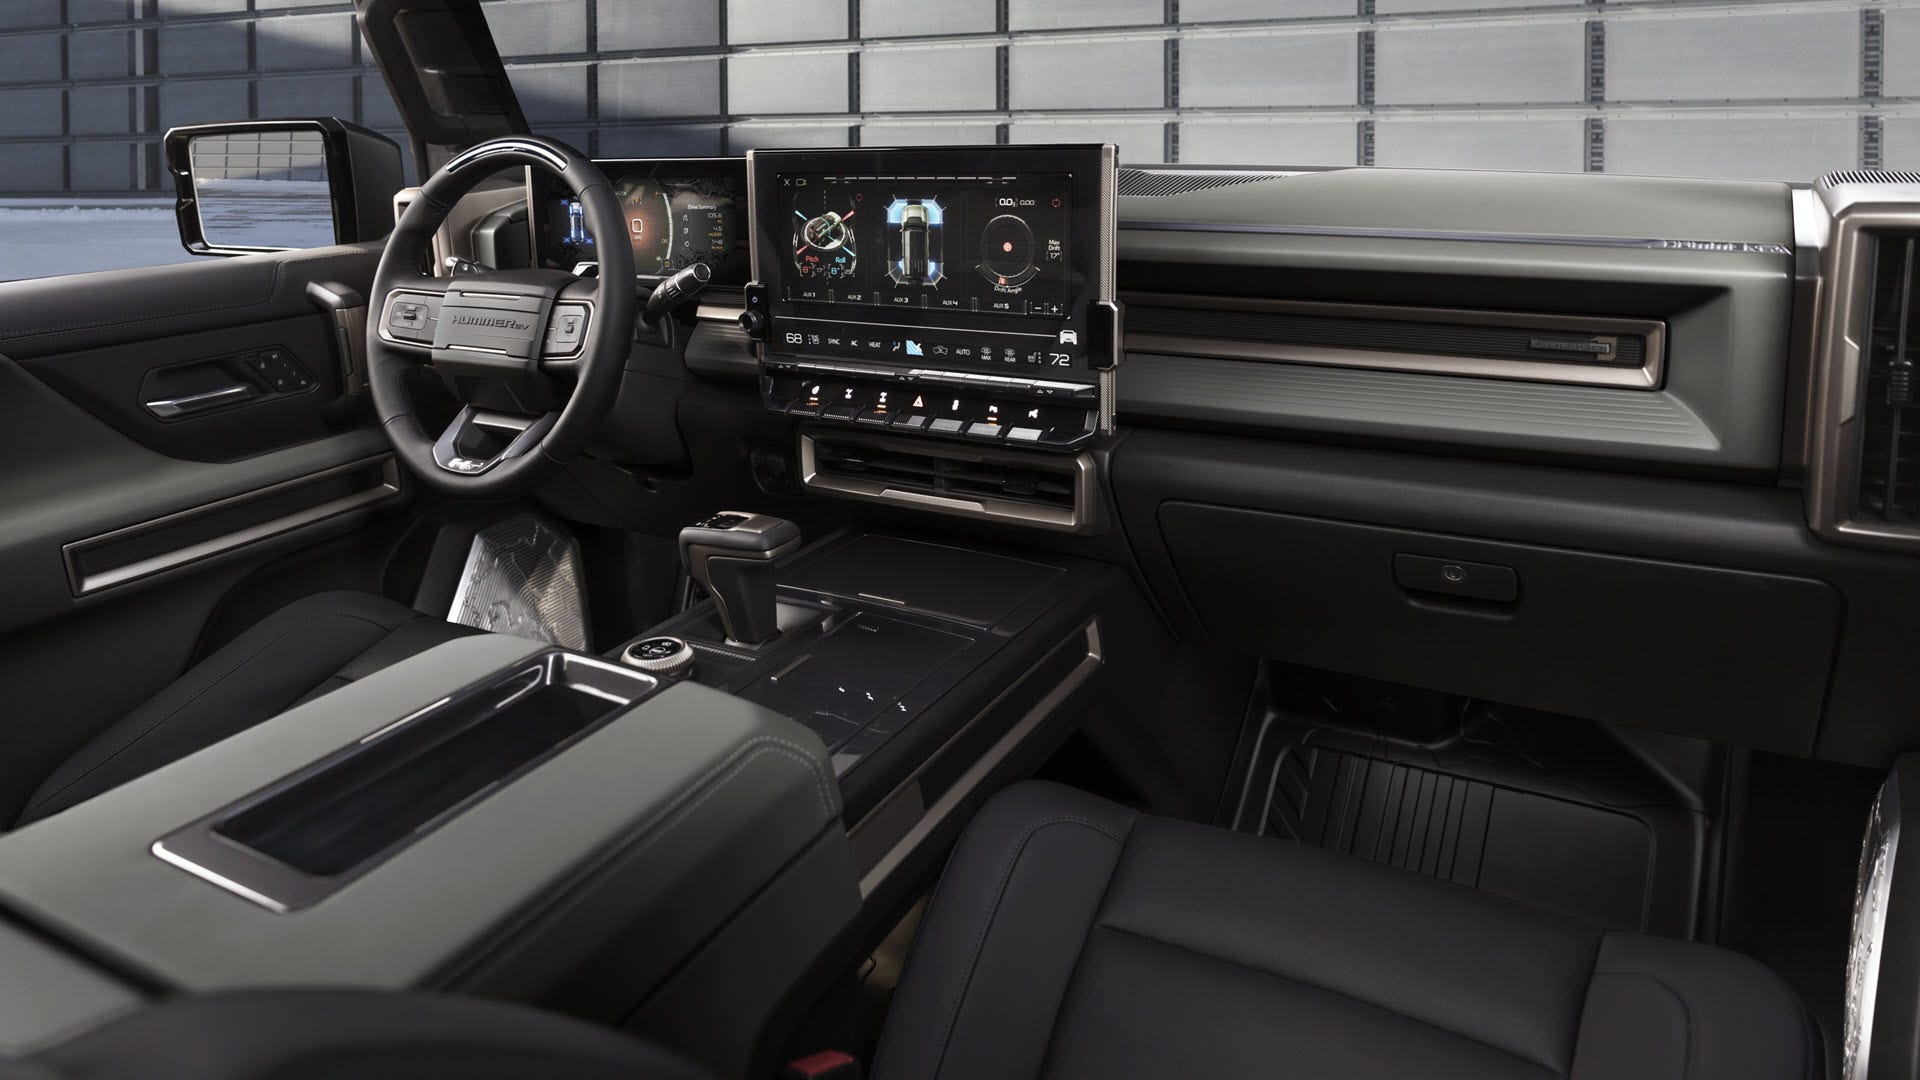 A interior of a Hummer EV with a large touchscreen dashboard.